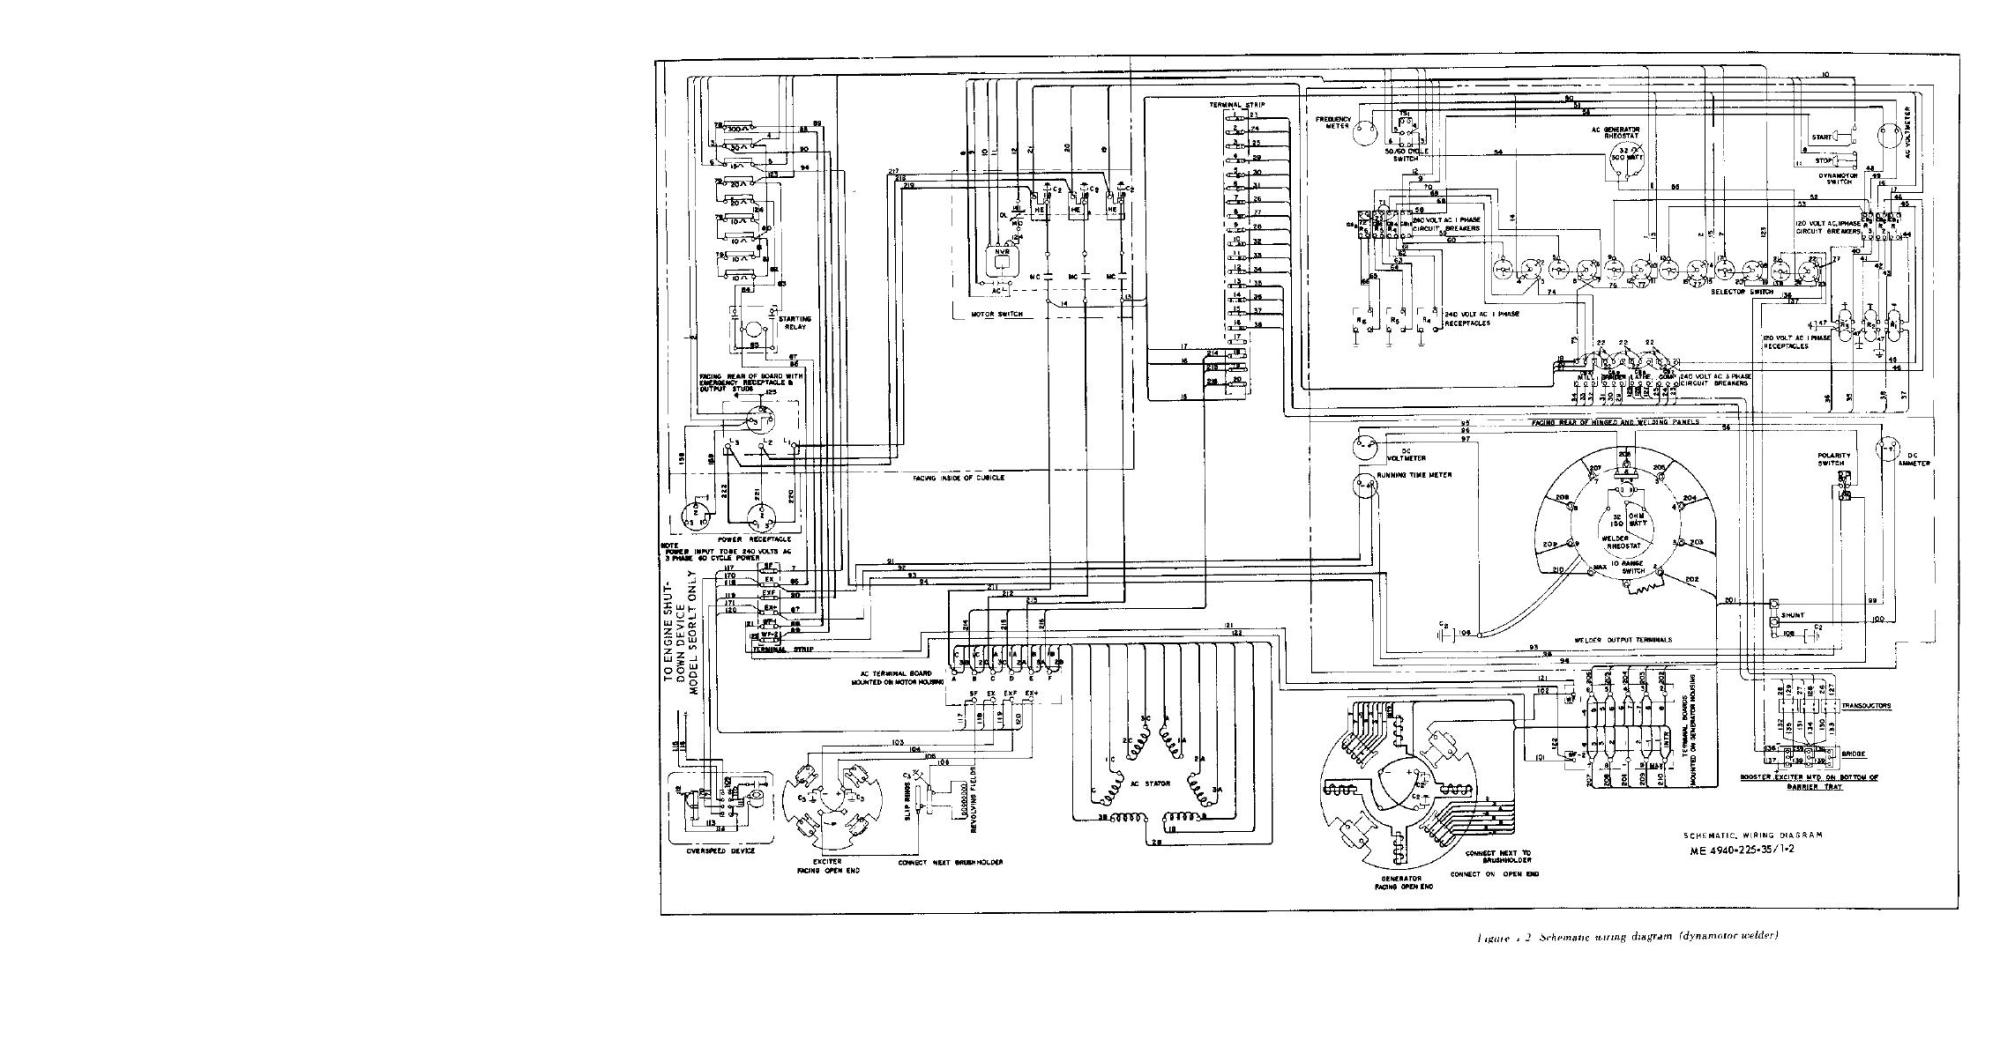 hight resolution of dc welder wiring diagram free download schematic wiring librarydc welder wiring diagram free download schematic